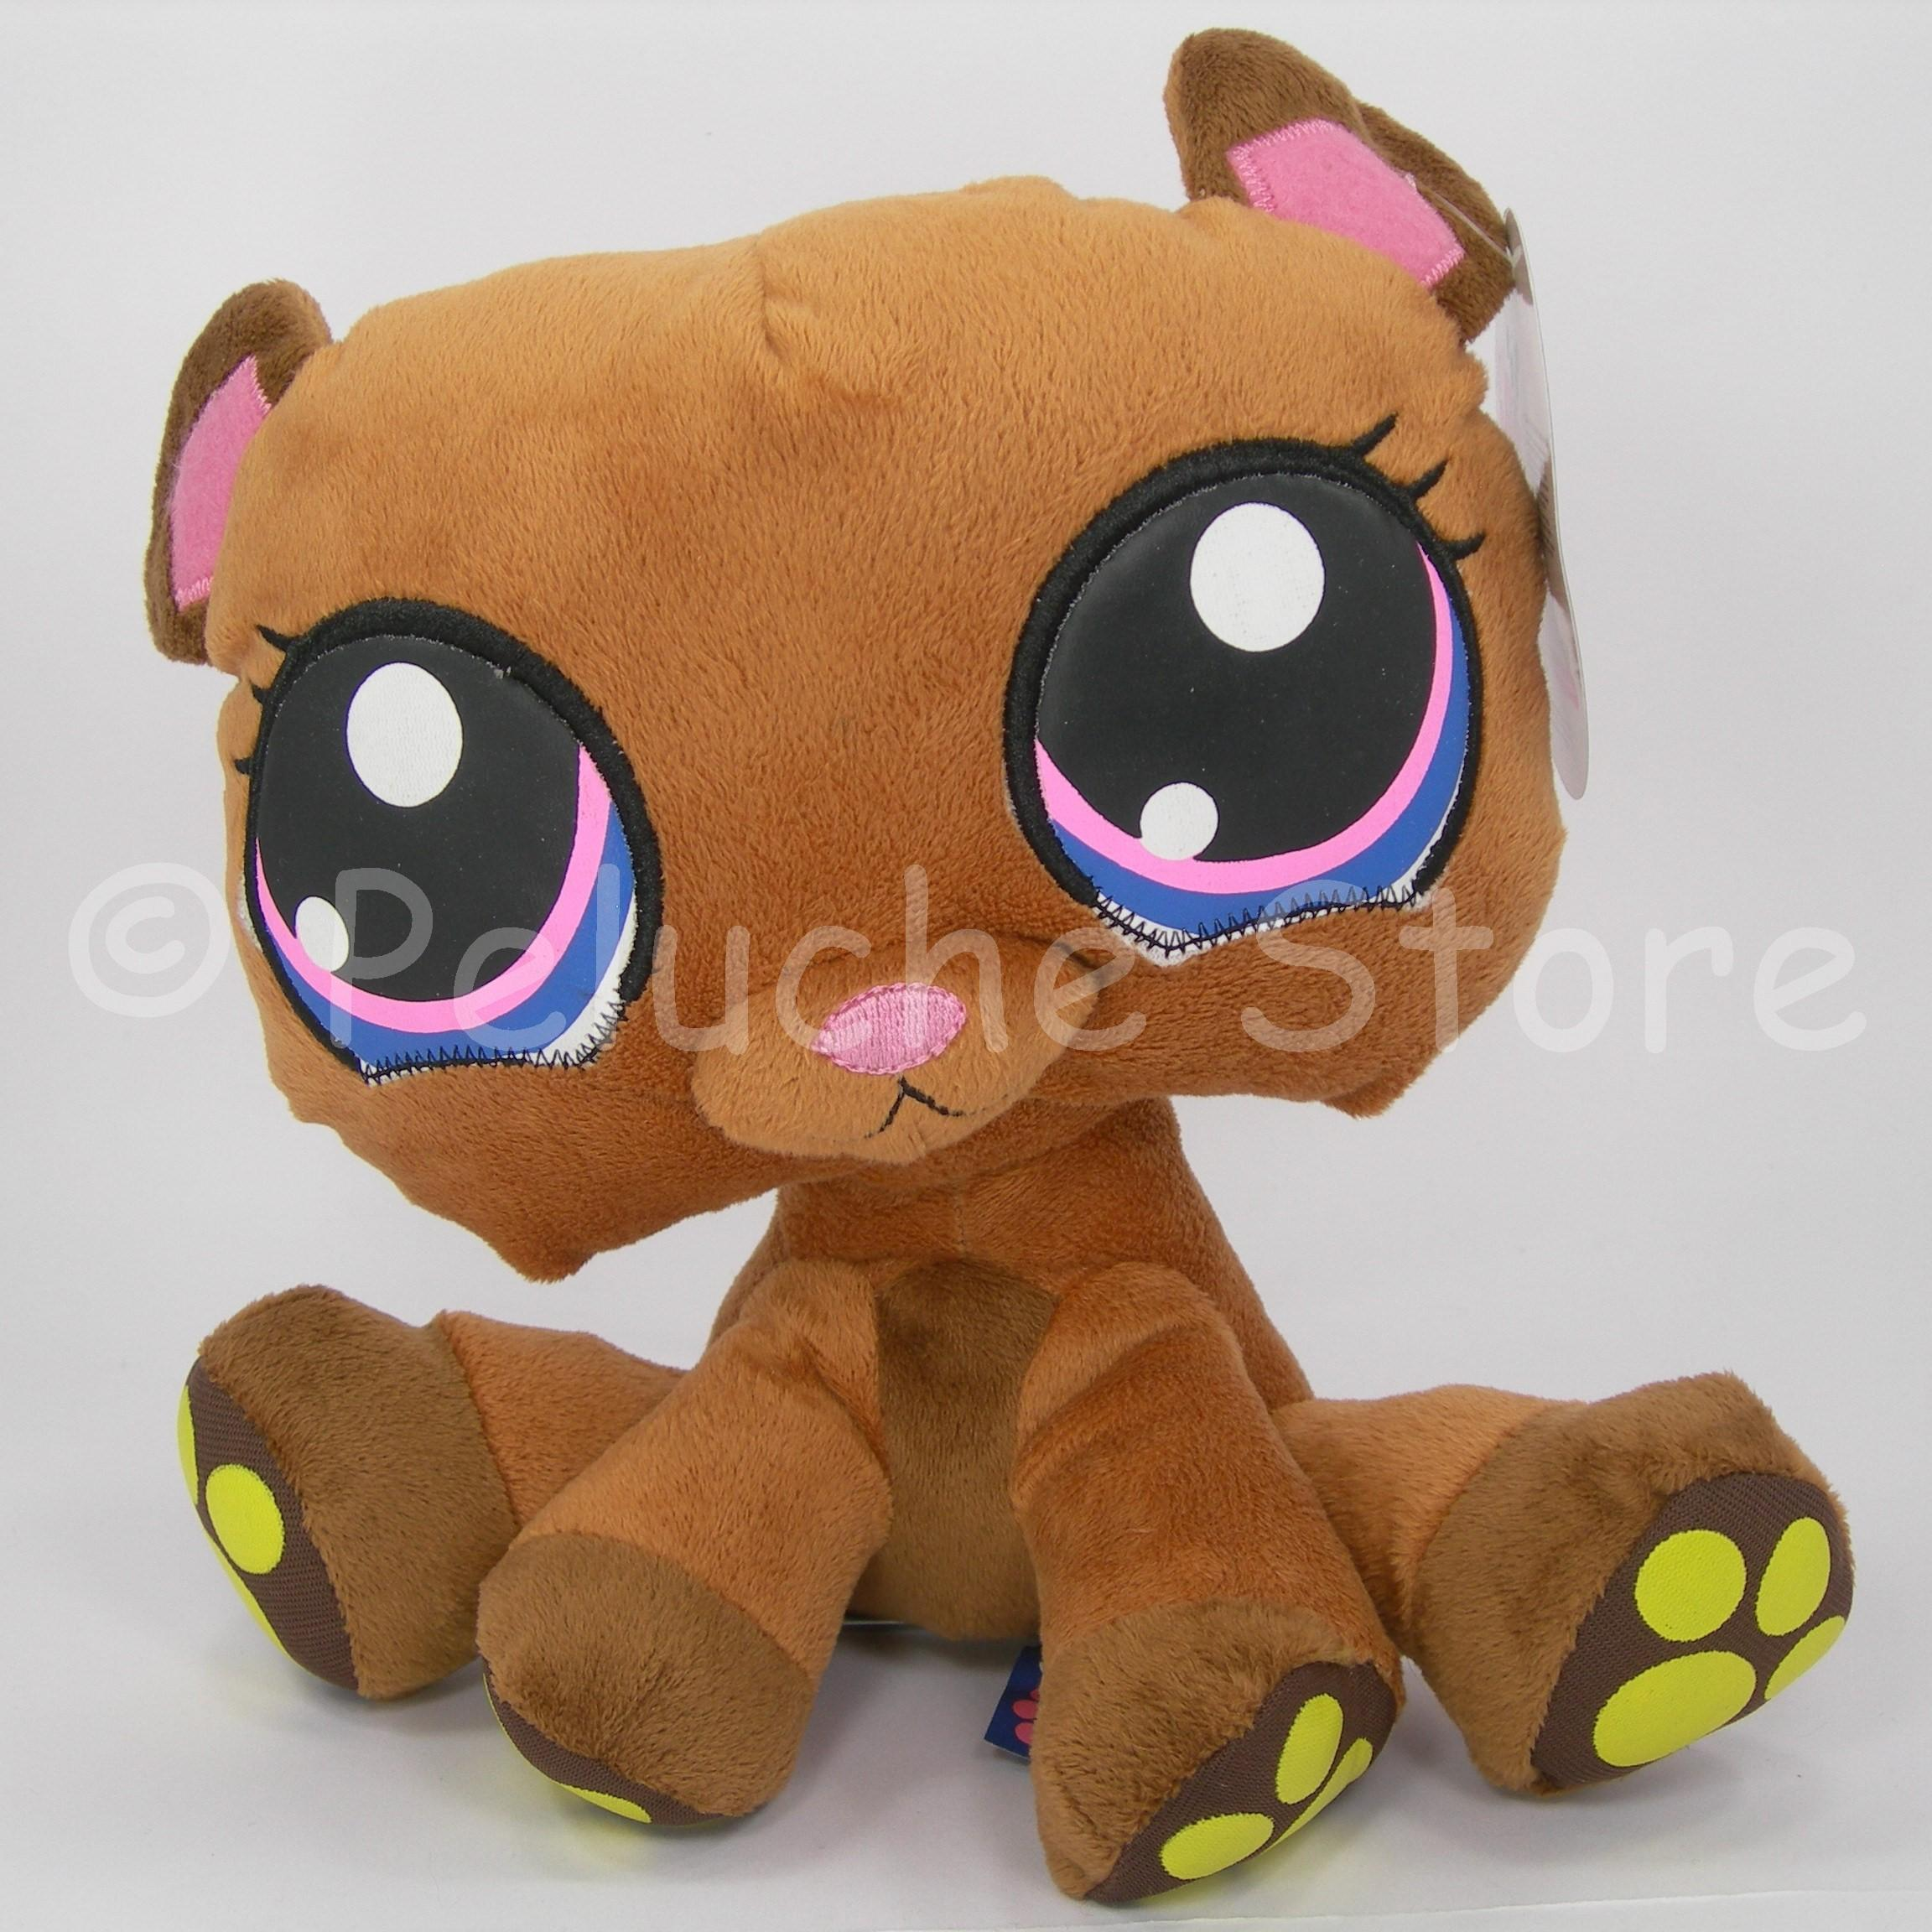 Littlest Pet Shop serie 2 peluche 25 cm Qualità velluto Originale Orsetto